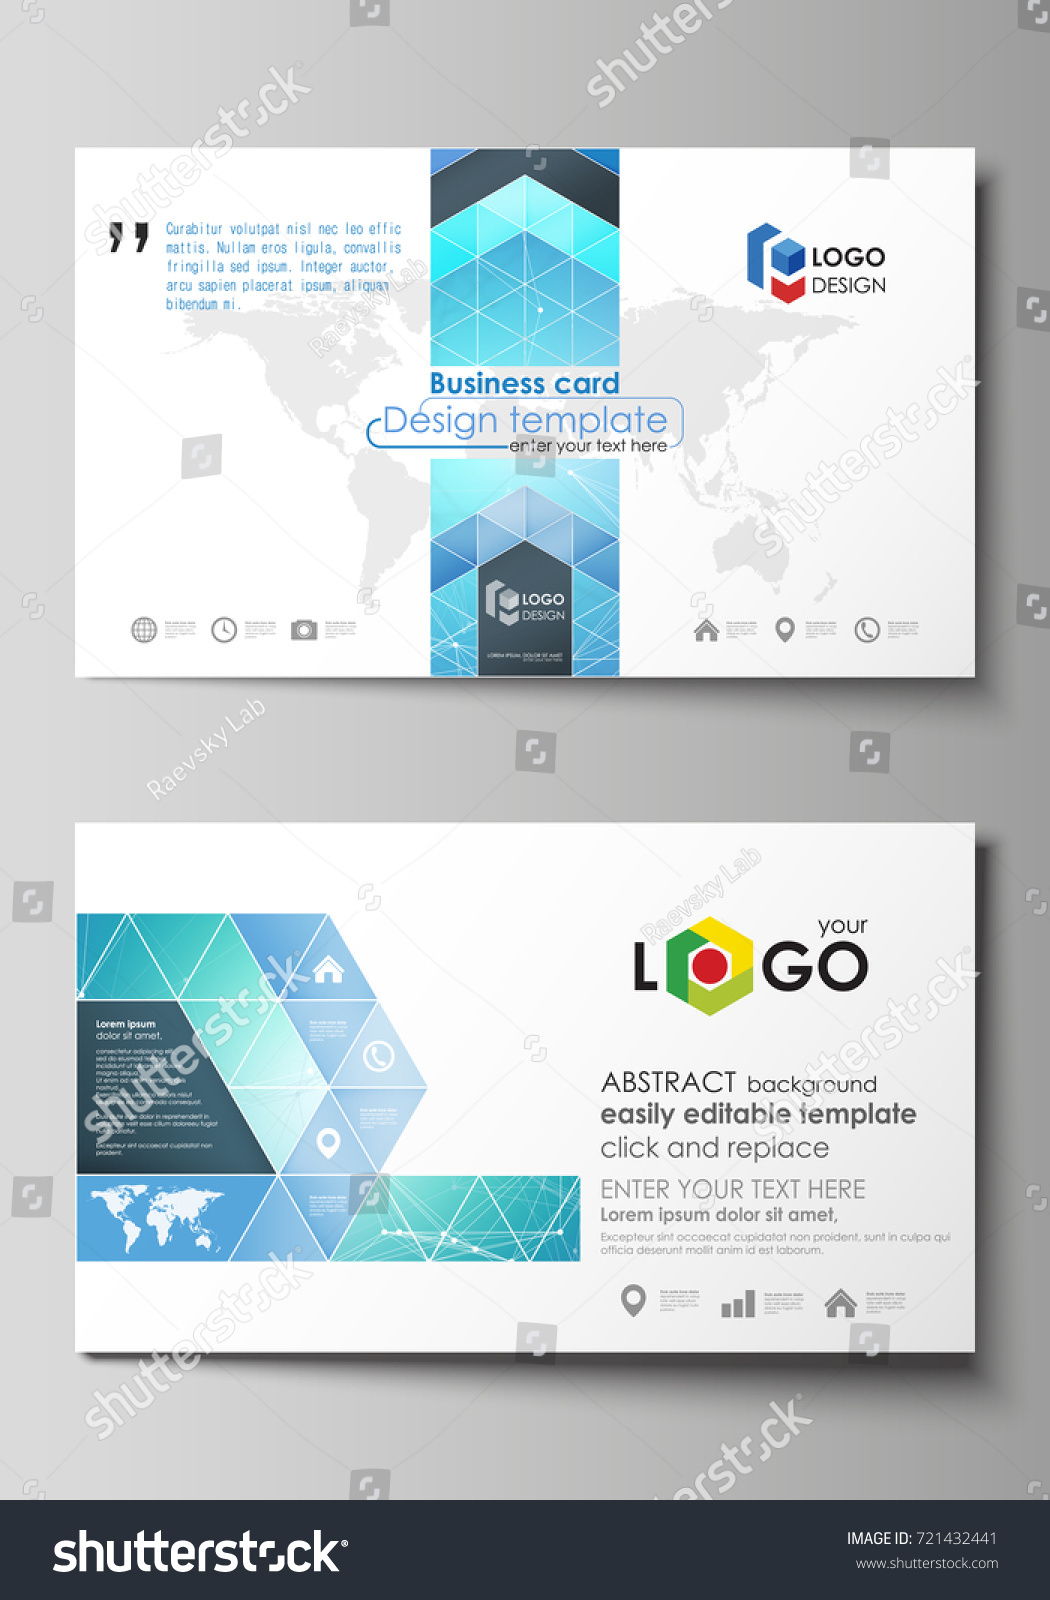 Business card templates easy editable layout stock vector 2018 business card templates easy editable layout abstract vector design template chemistry pattern reheart Choice Image